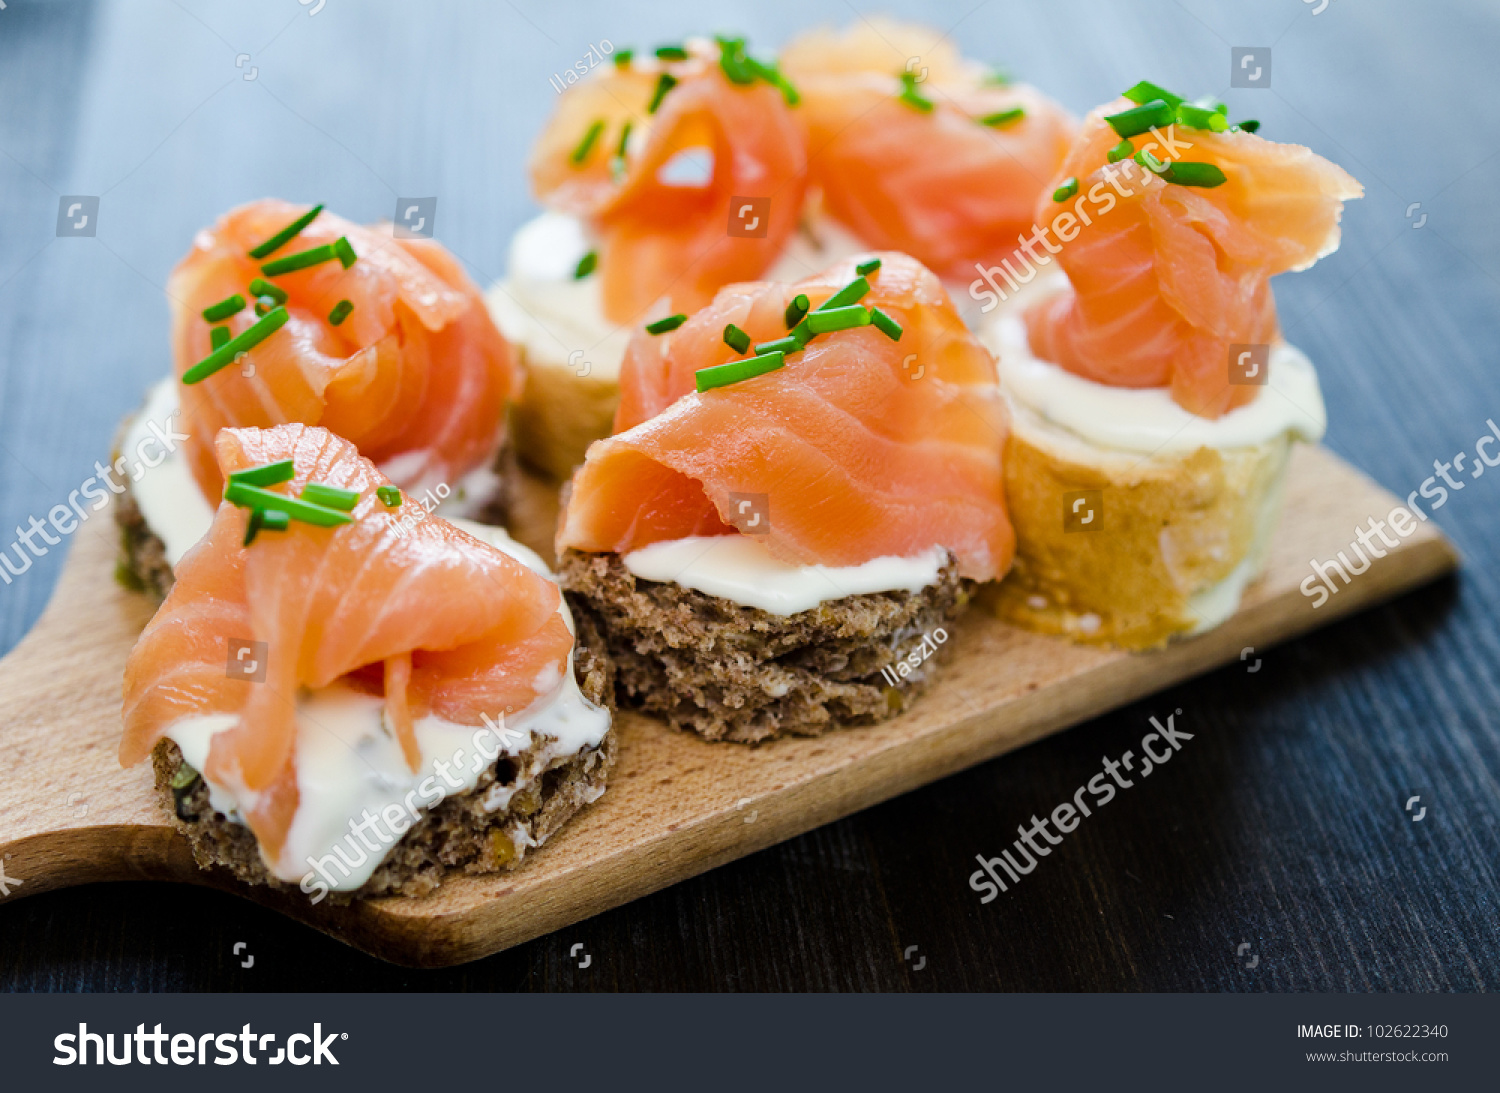 Canapes smoked salmon cream cheese stock photo 102622340 for Smoked salmon cream cheese canape